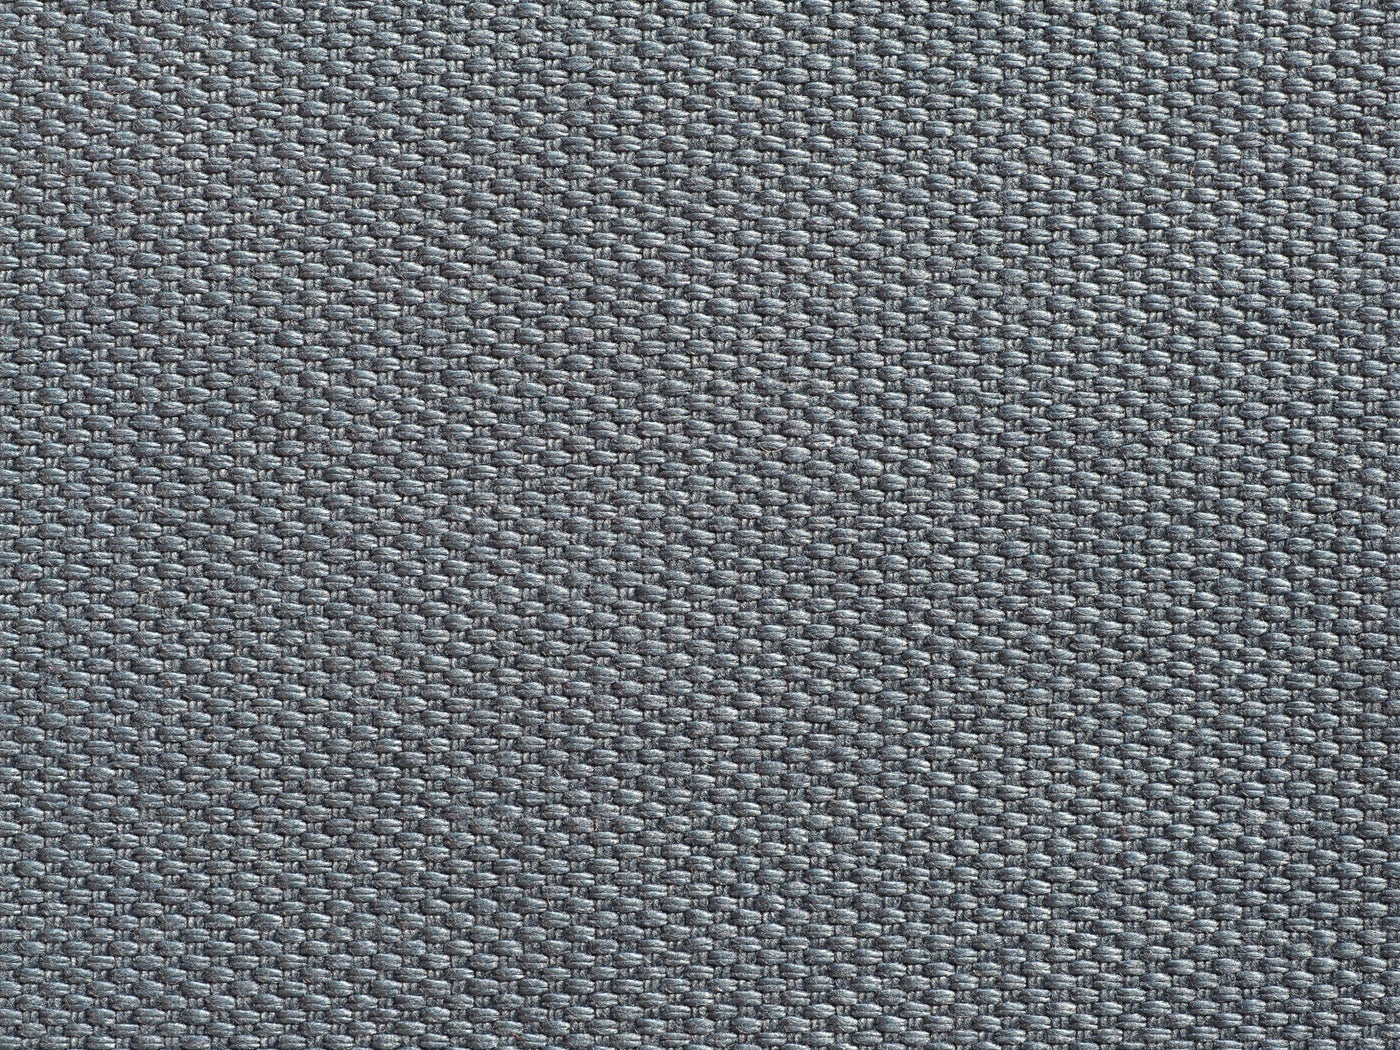 Gray Fabric With Patterns: Stock Photos